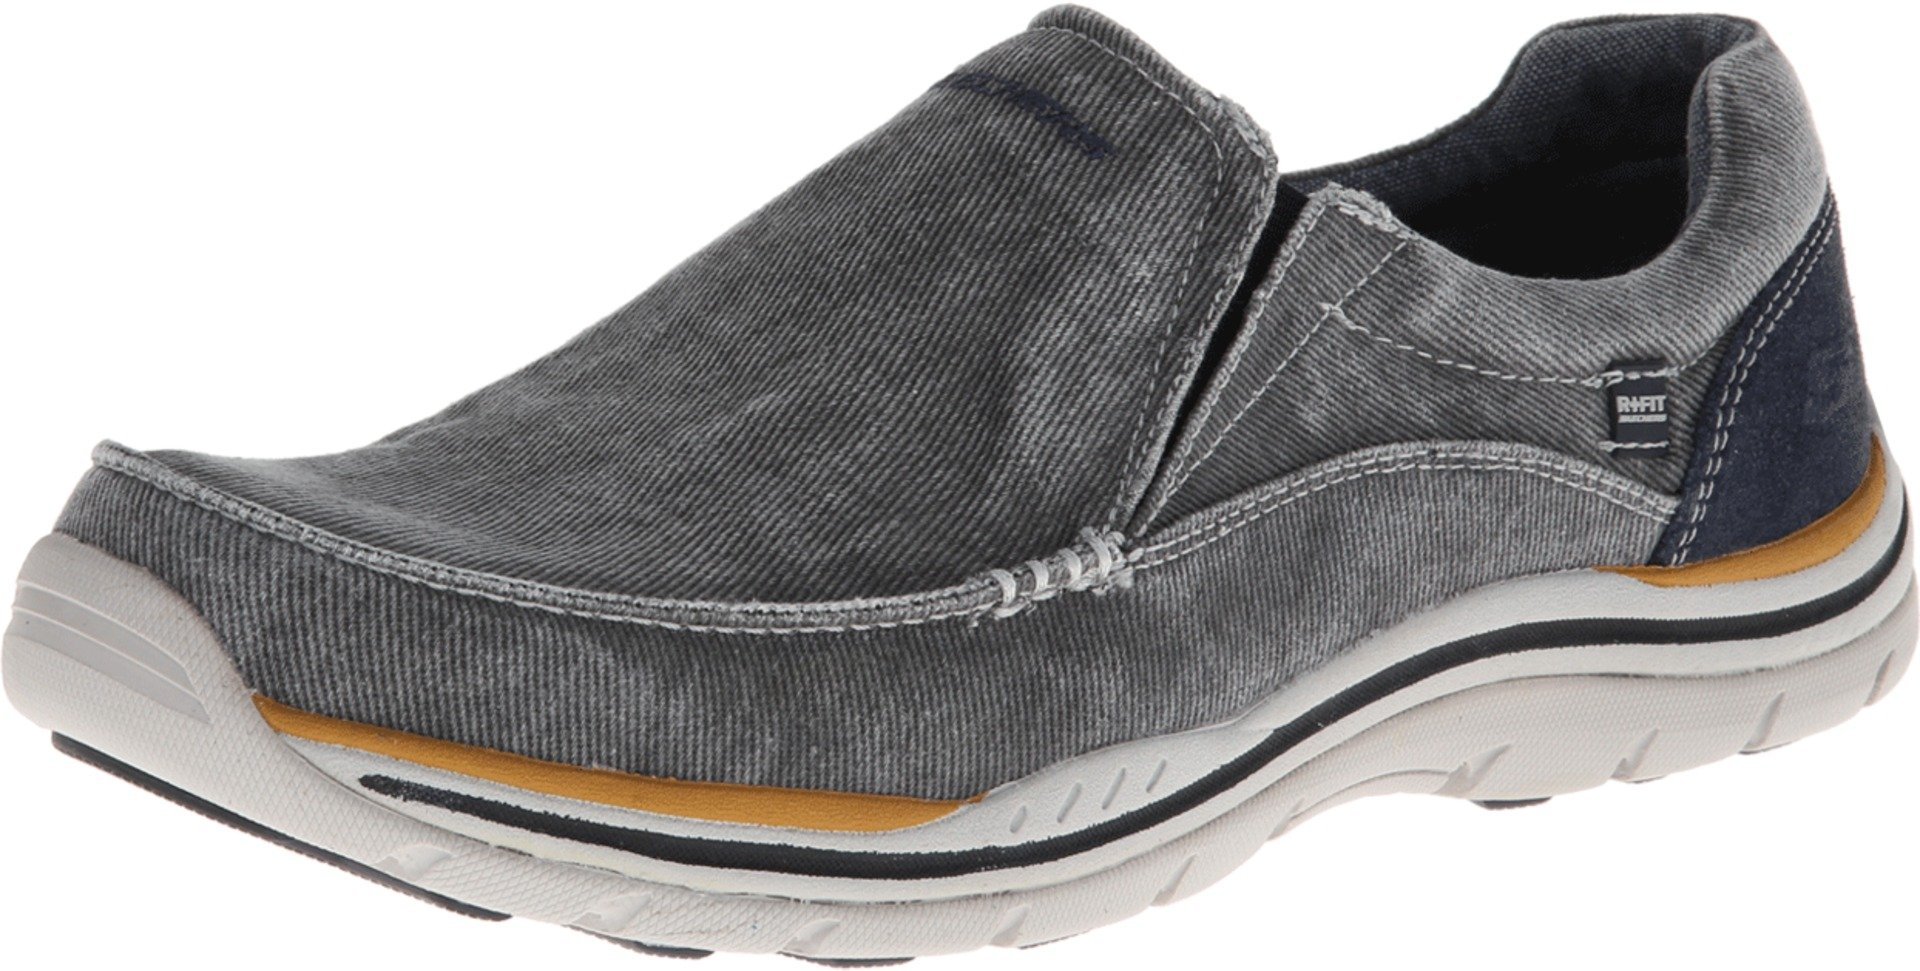 Skechers Men's, Expected Avillo Slip on Shoe Denim Blue 13 M